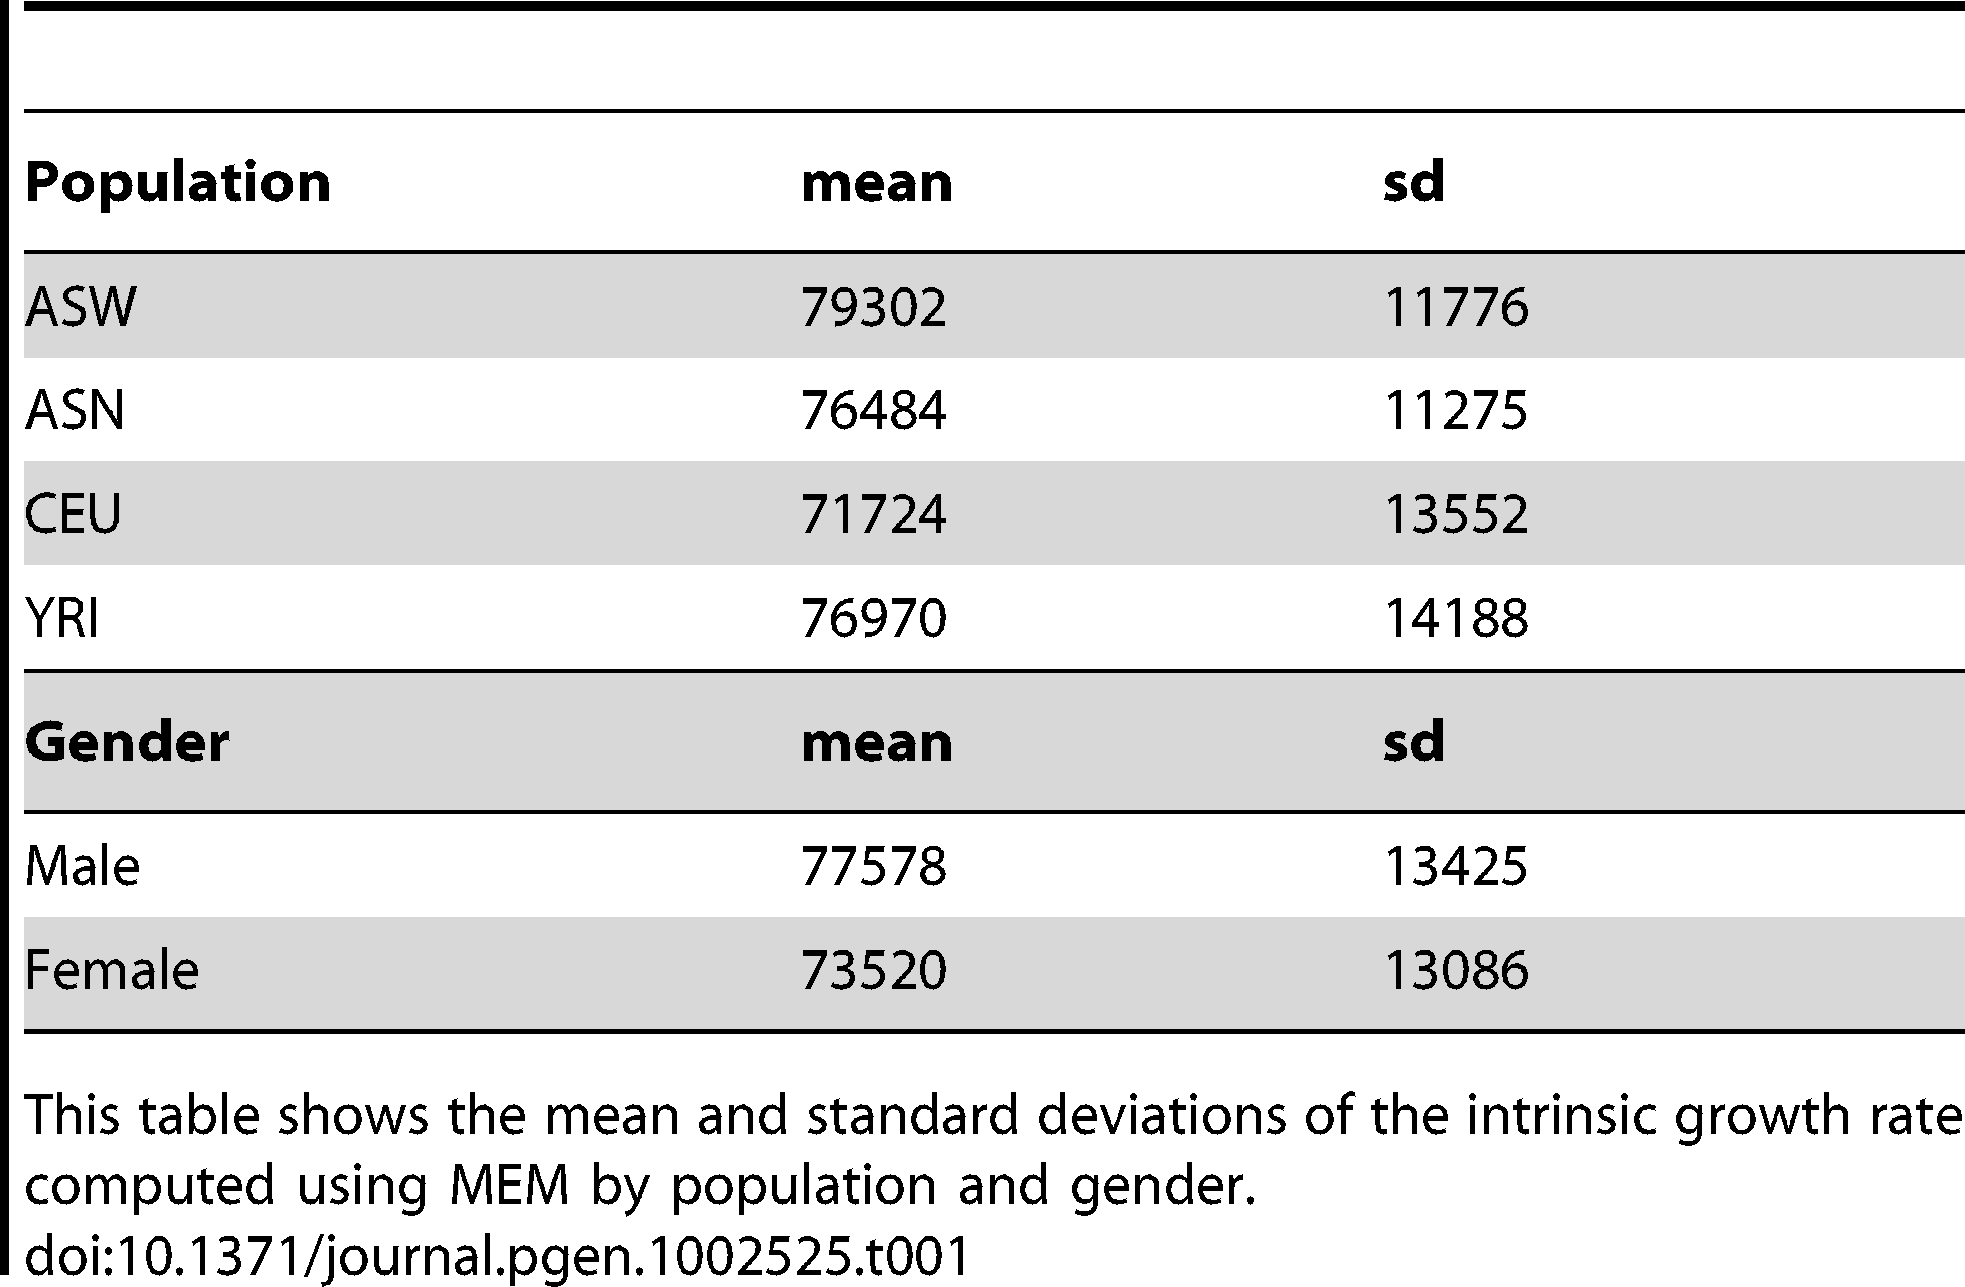 Average intrinsic growth rate by population and gender.